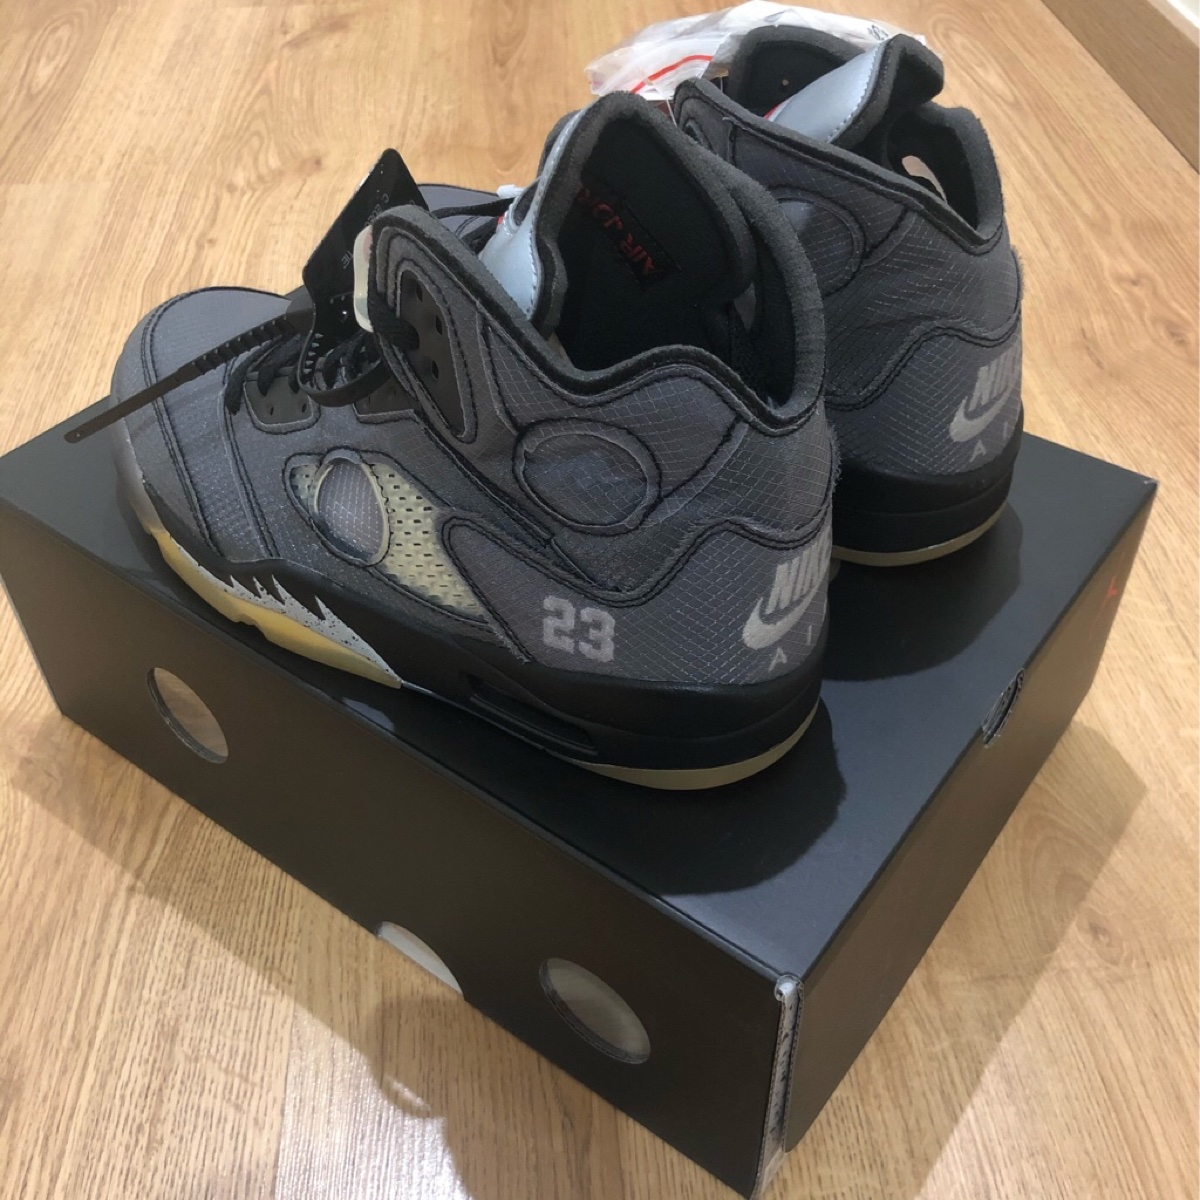 Jordan 5 Retro Off-White Black